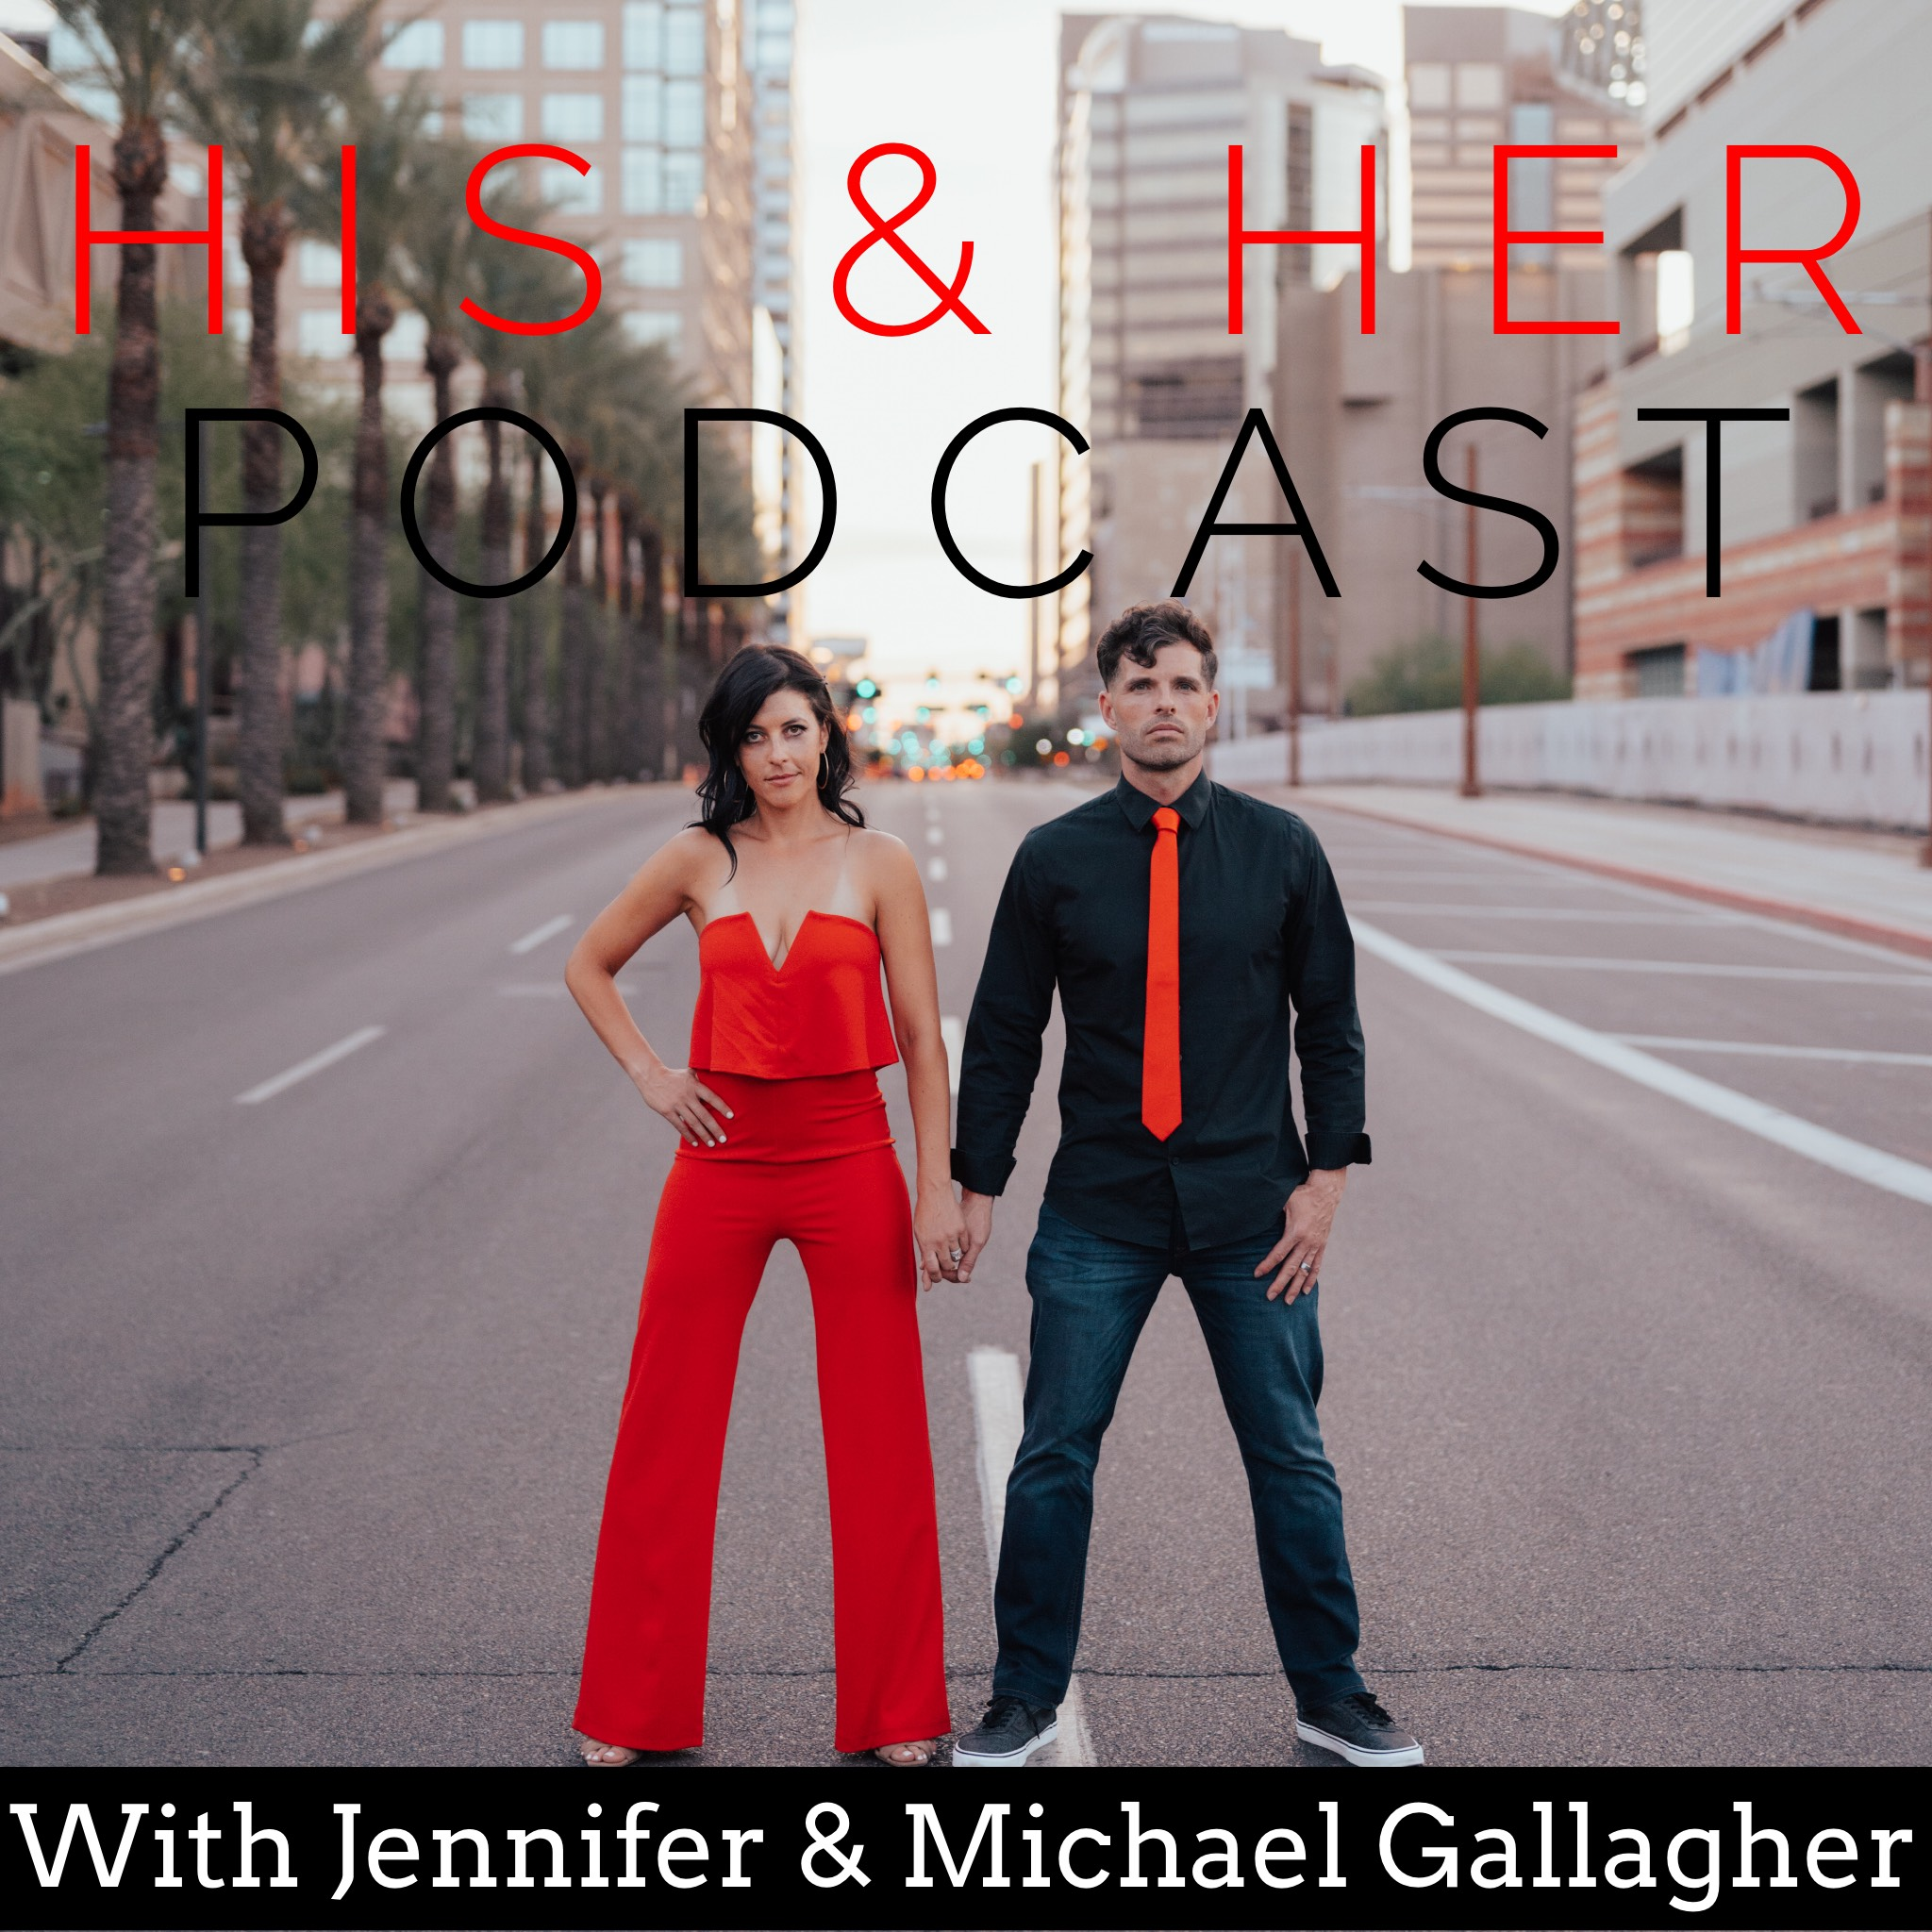 His & Her Podcast show art